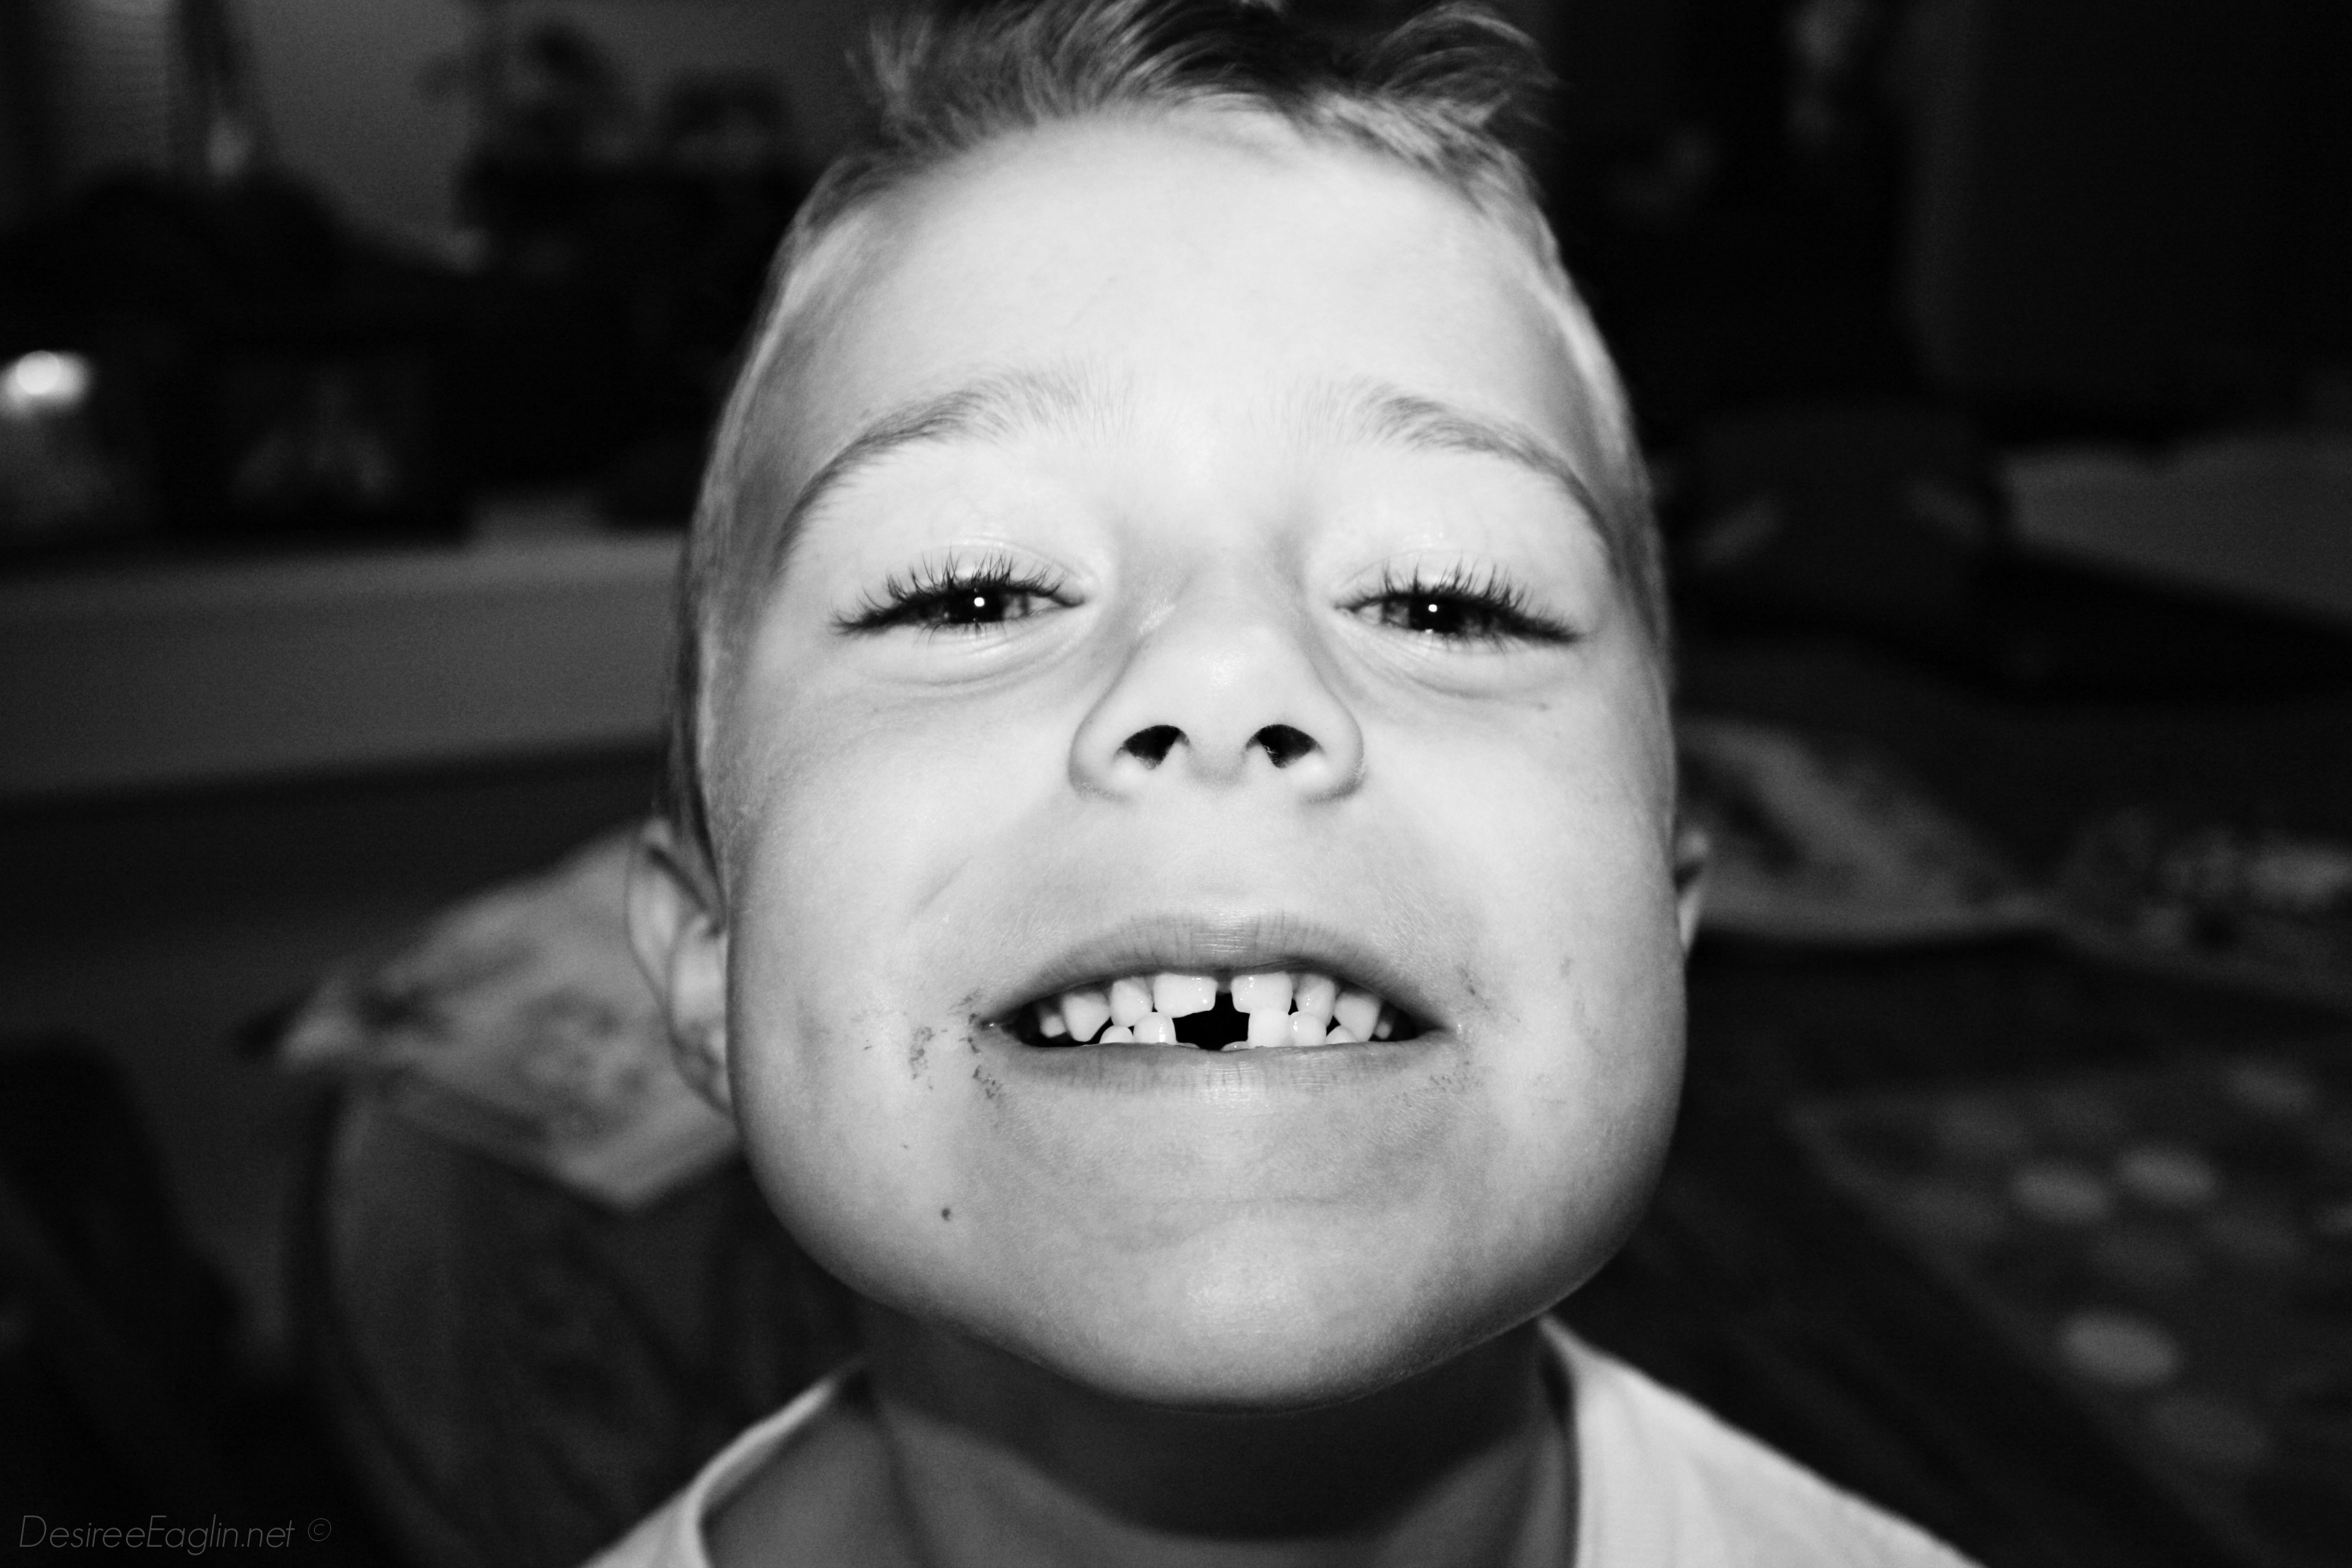 lost tooth, first lost tooth, loose teeth, kids teeth, kids losing teeth